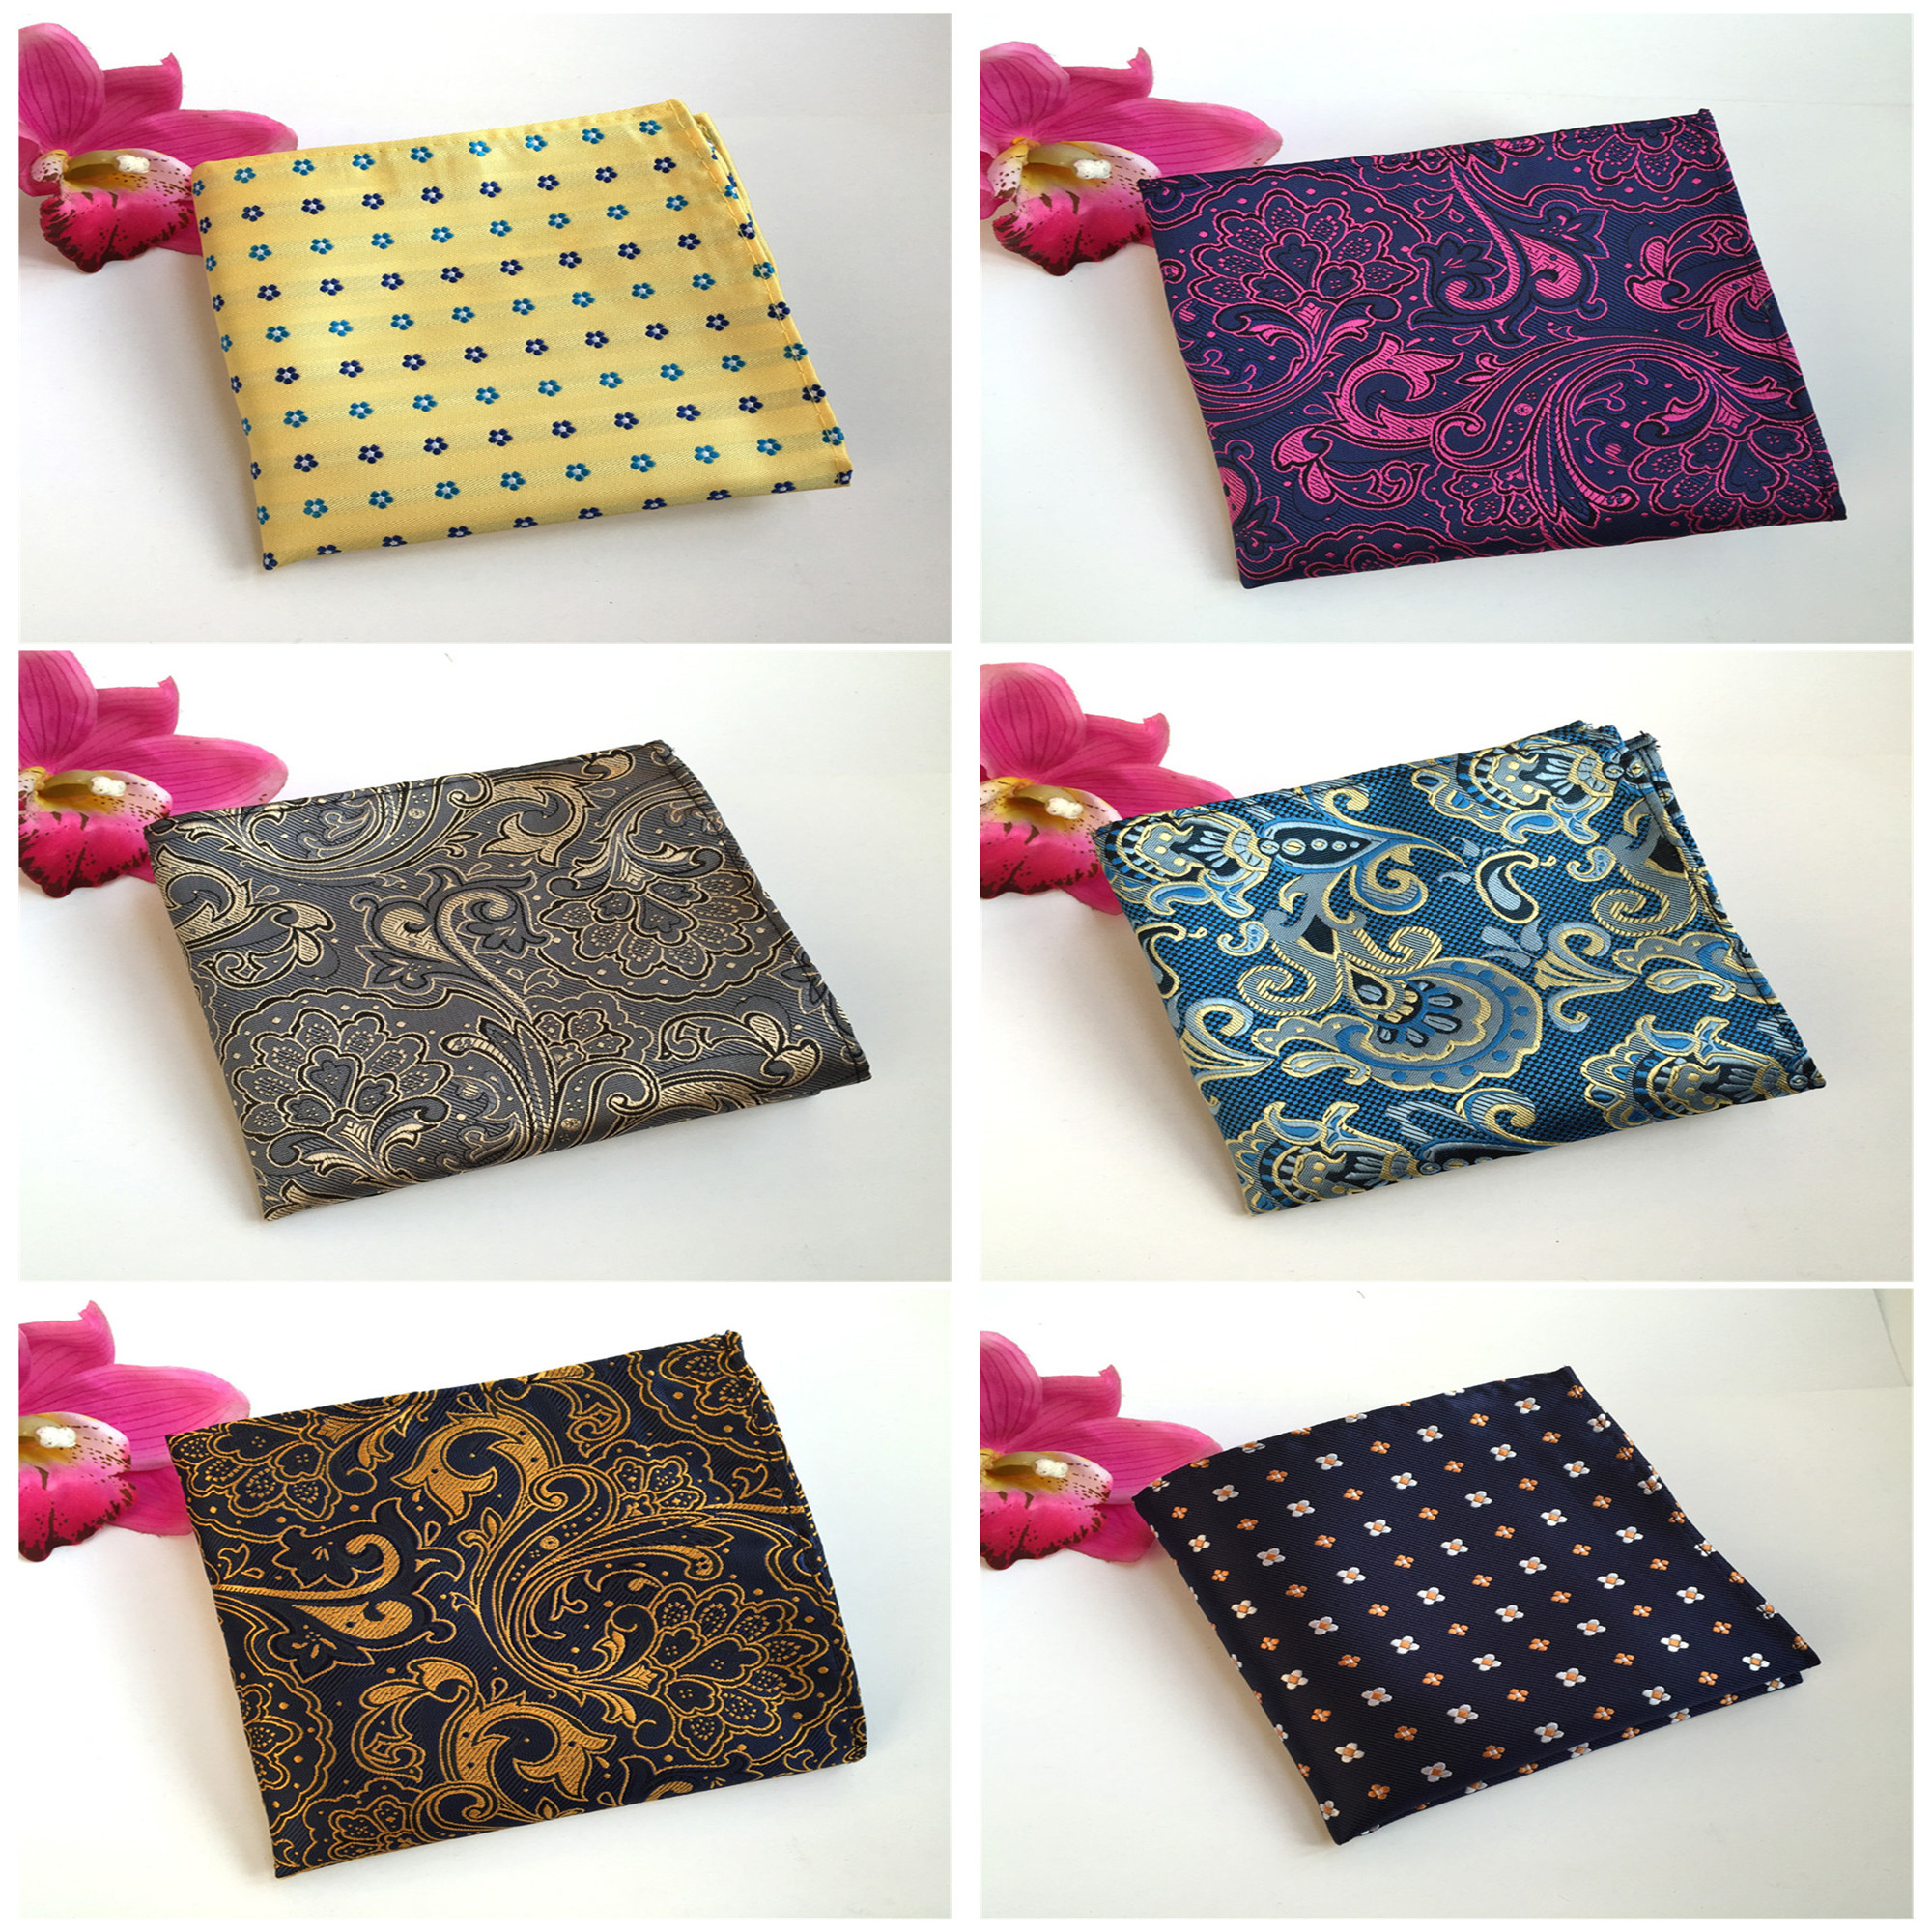 2020 High Quality Men's Business Handkerchief Pocket Towel Quality Simple And Simple Personality Fashion Decorative Pocket Towel